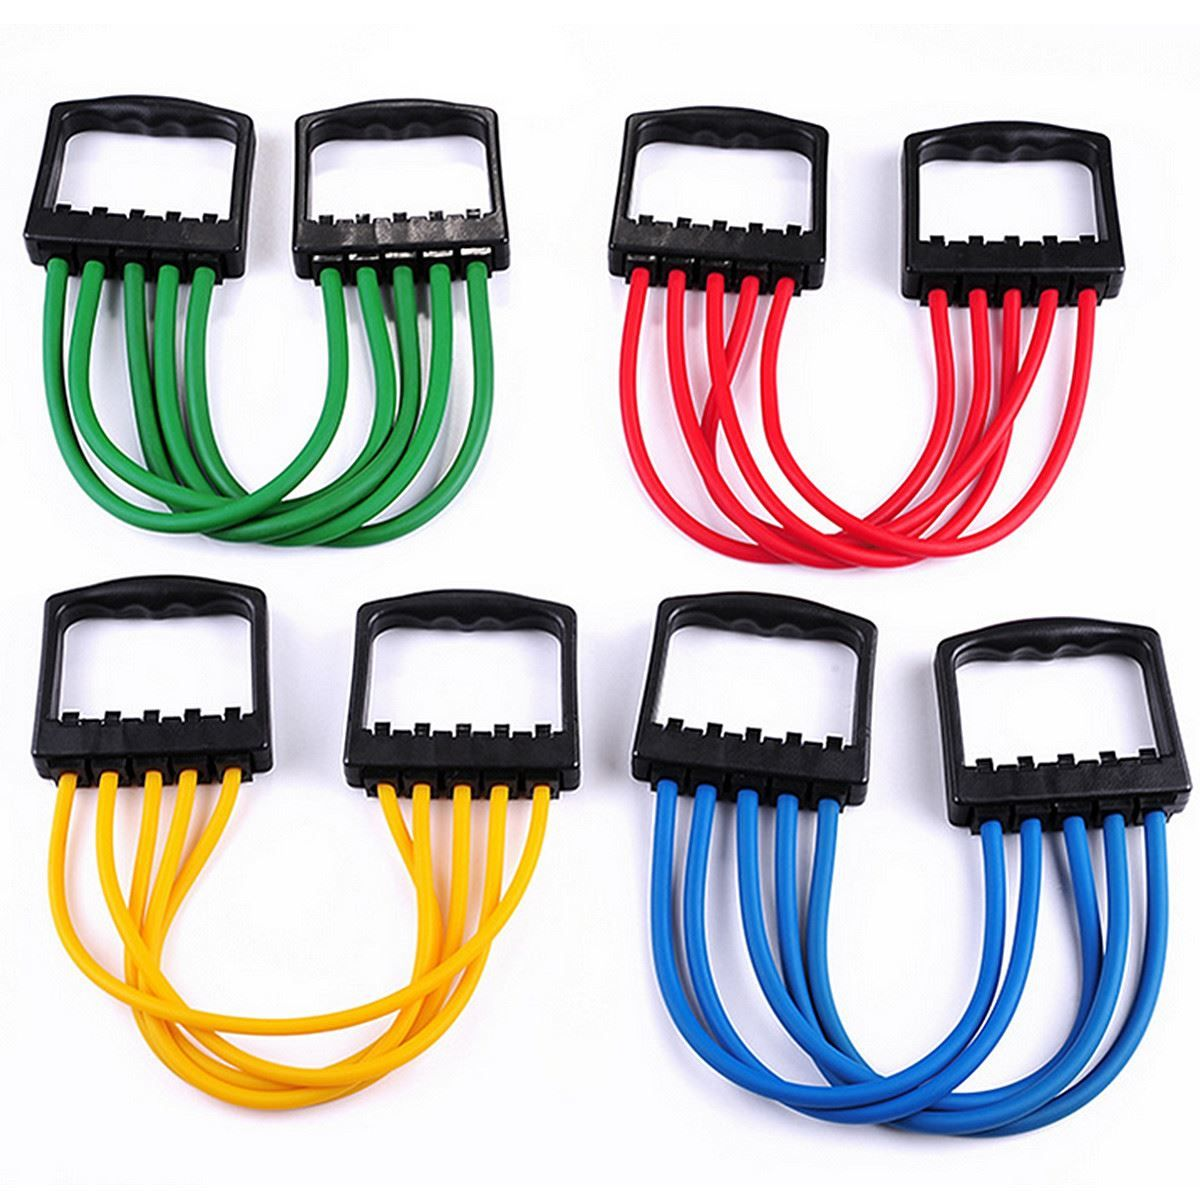 5-Spring Latex Tube Exerciser Resistance Cable Bands Fitness